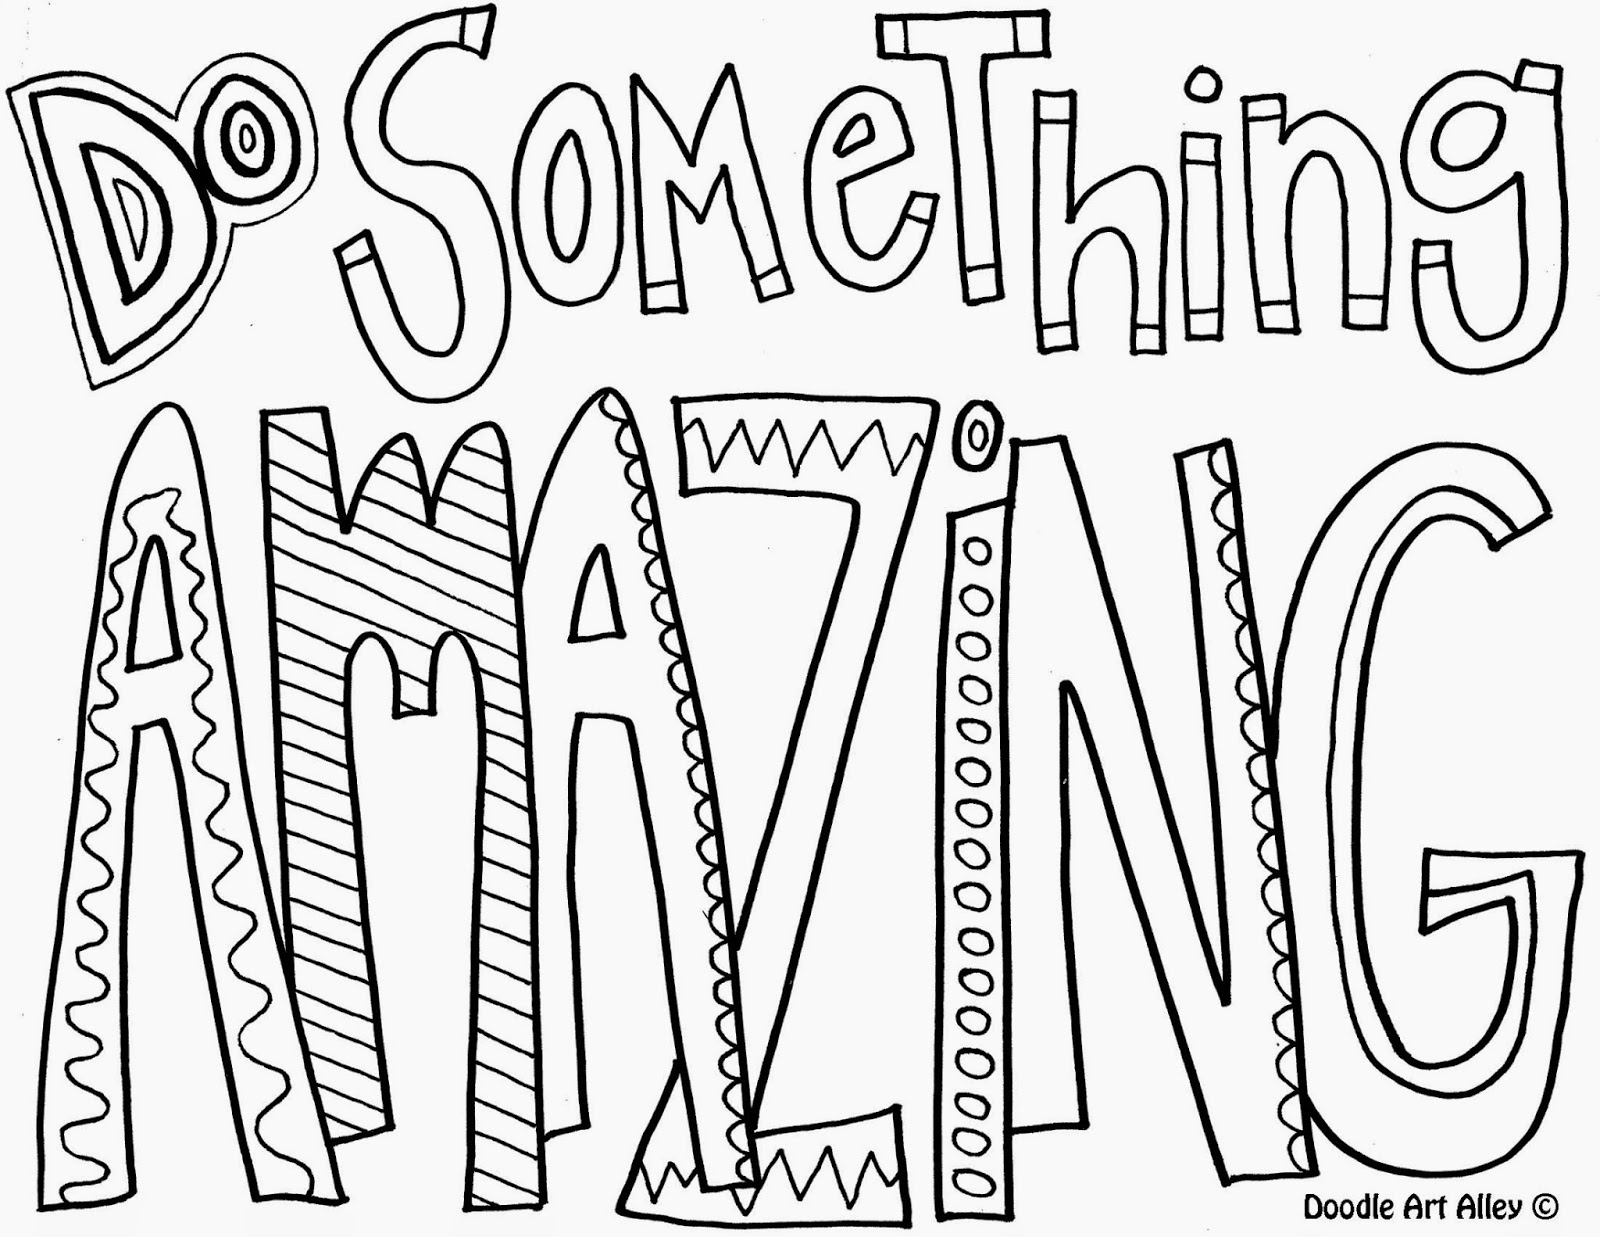 Inspirational Coloring Pages To Download And Print For Free Coloring Pages With Quotes